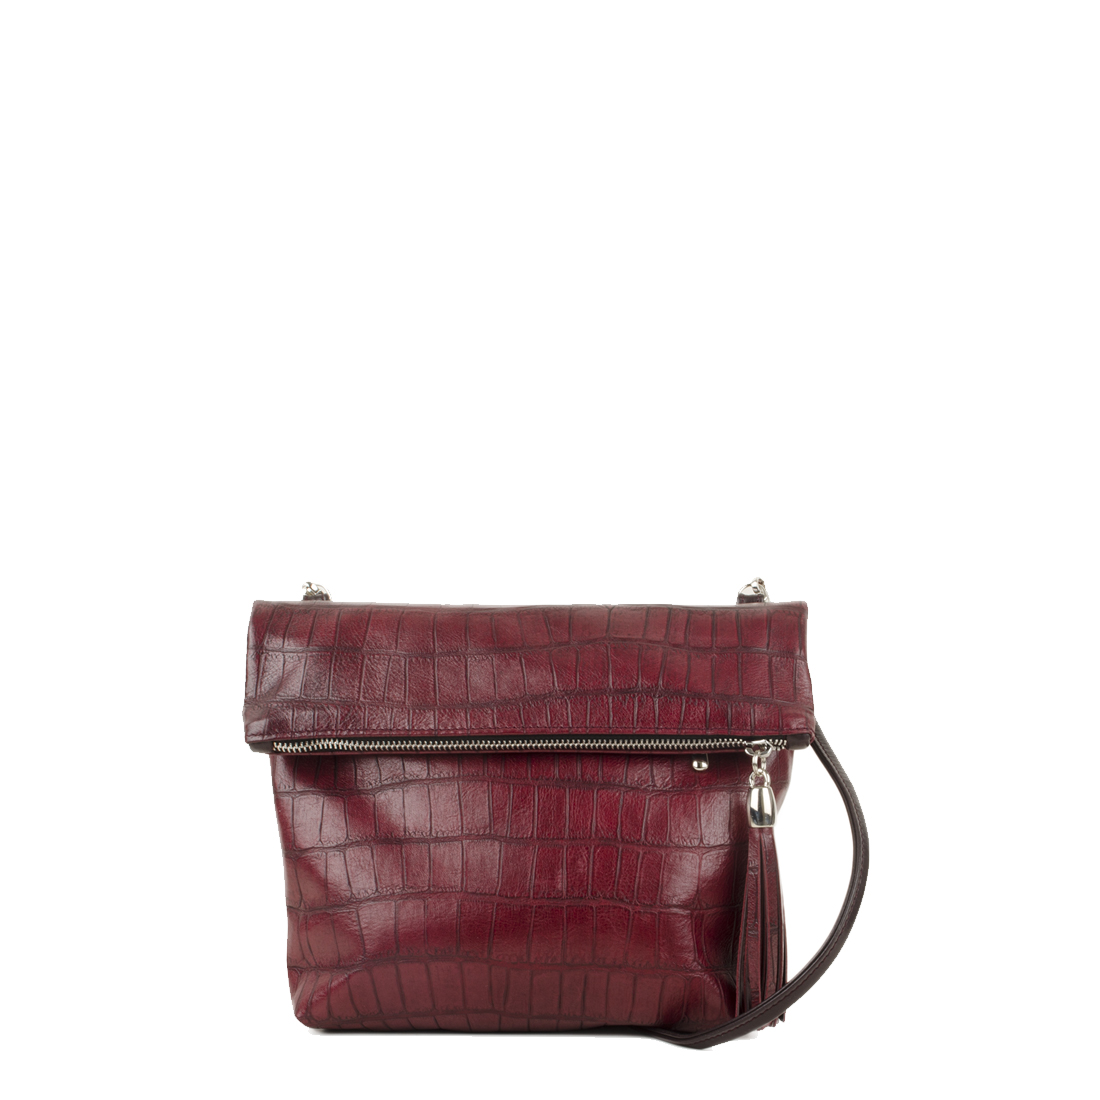 Sofia Burgundy Crocodile Print Across Body Bag